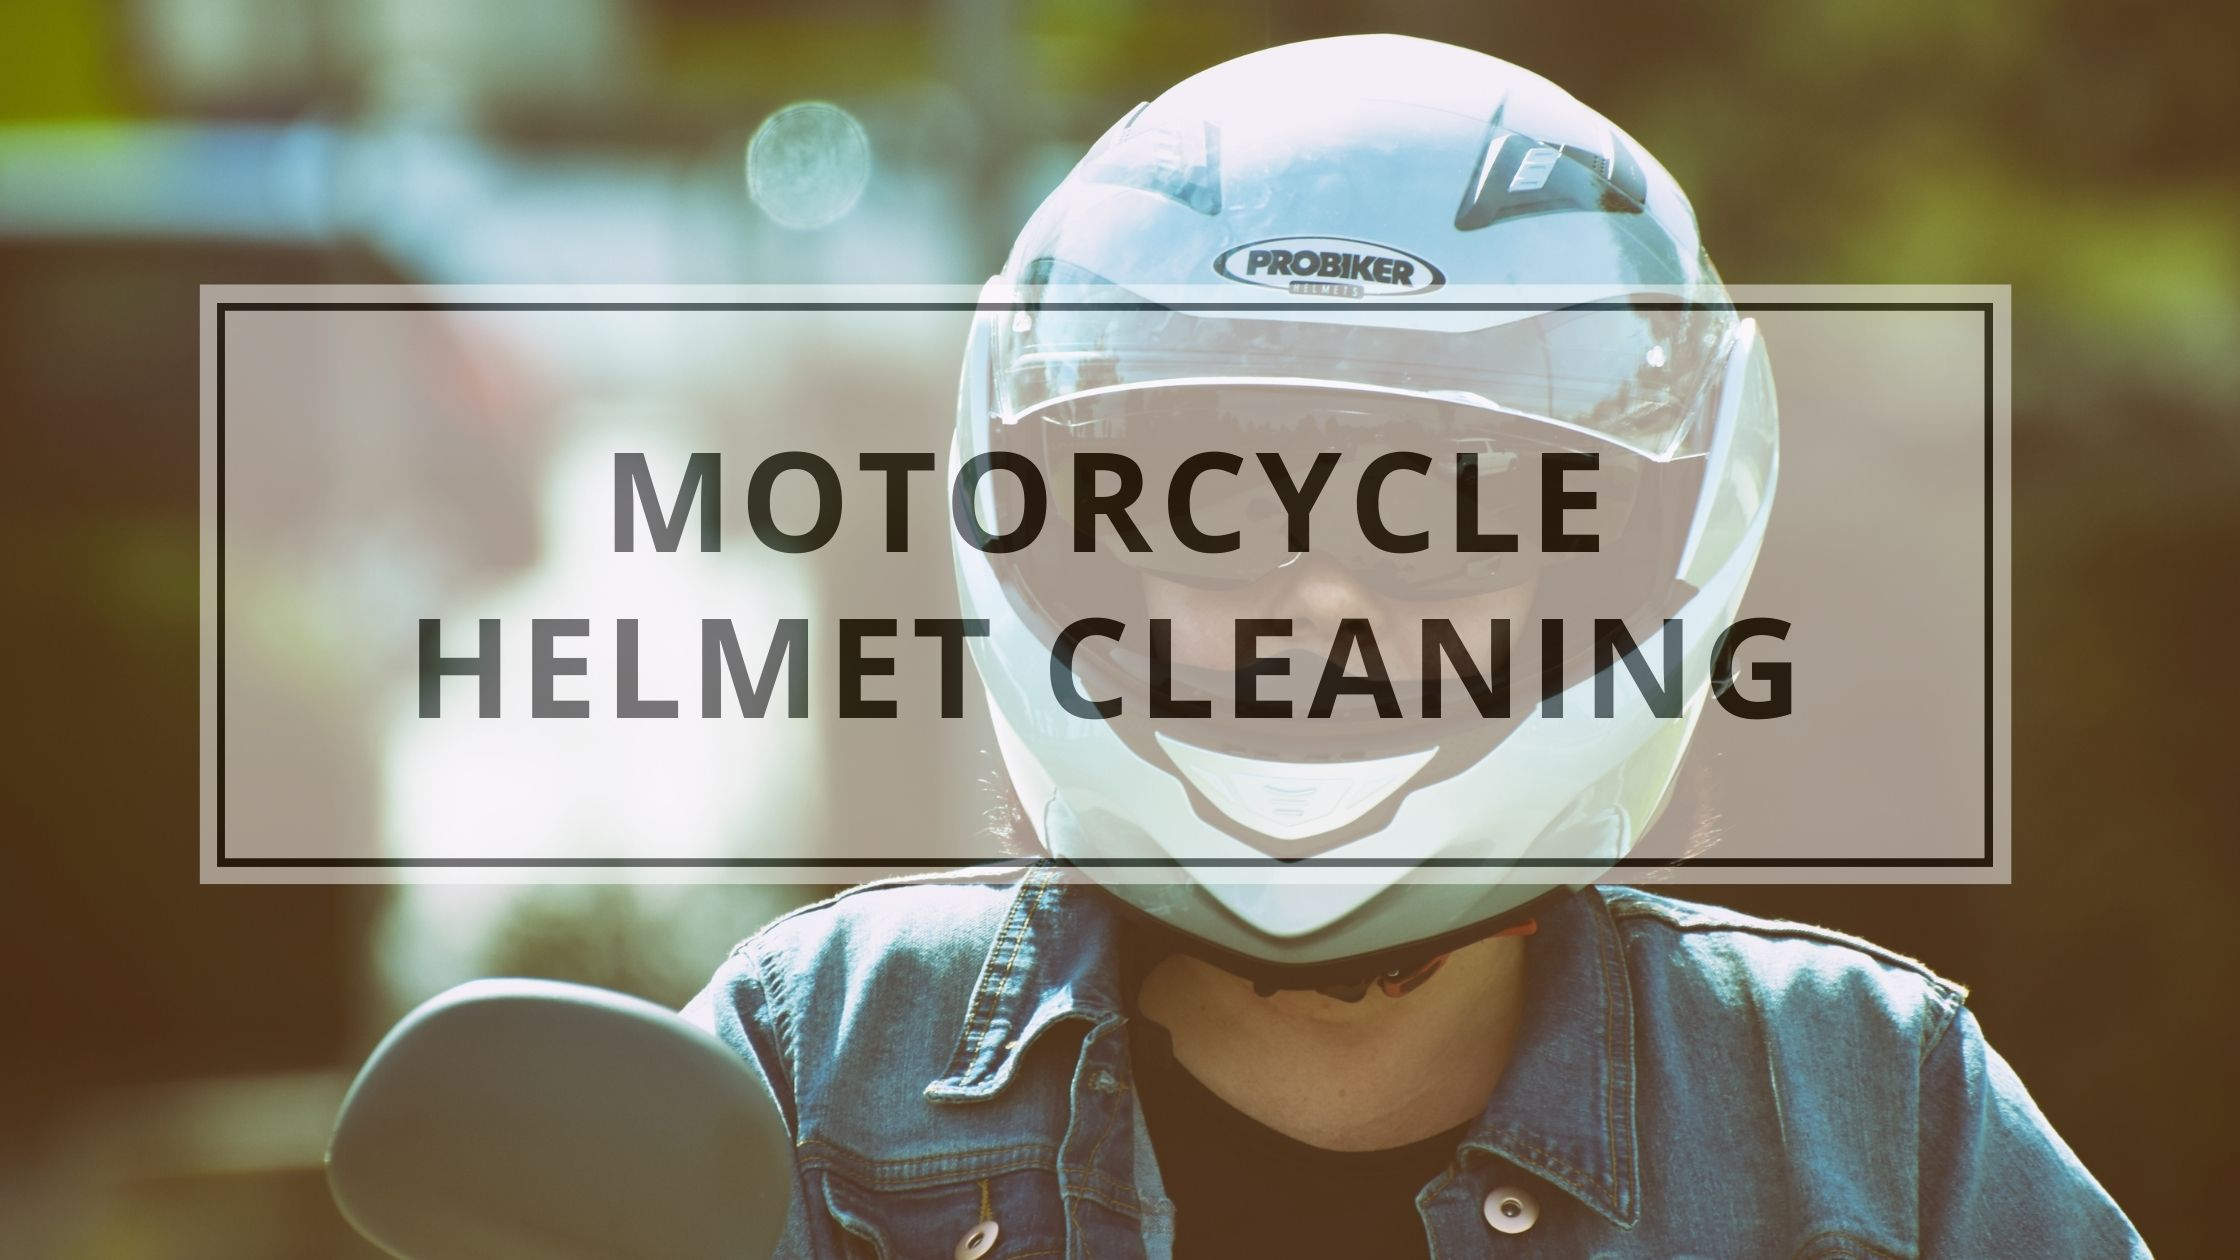 How To Clean A Motorcycle Helmet | Helmet Cleaning Guide 2021